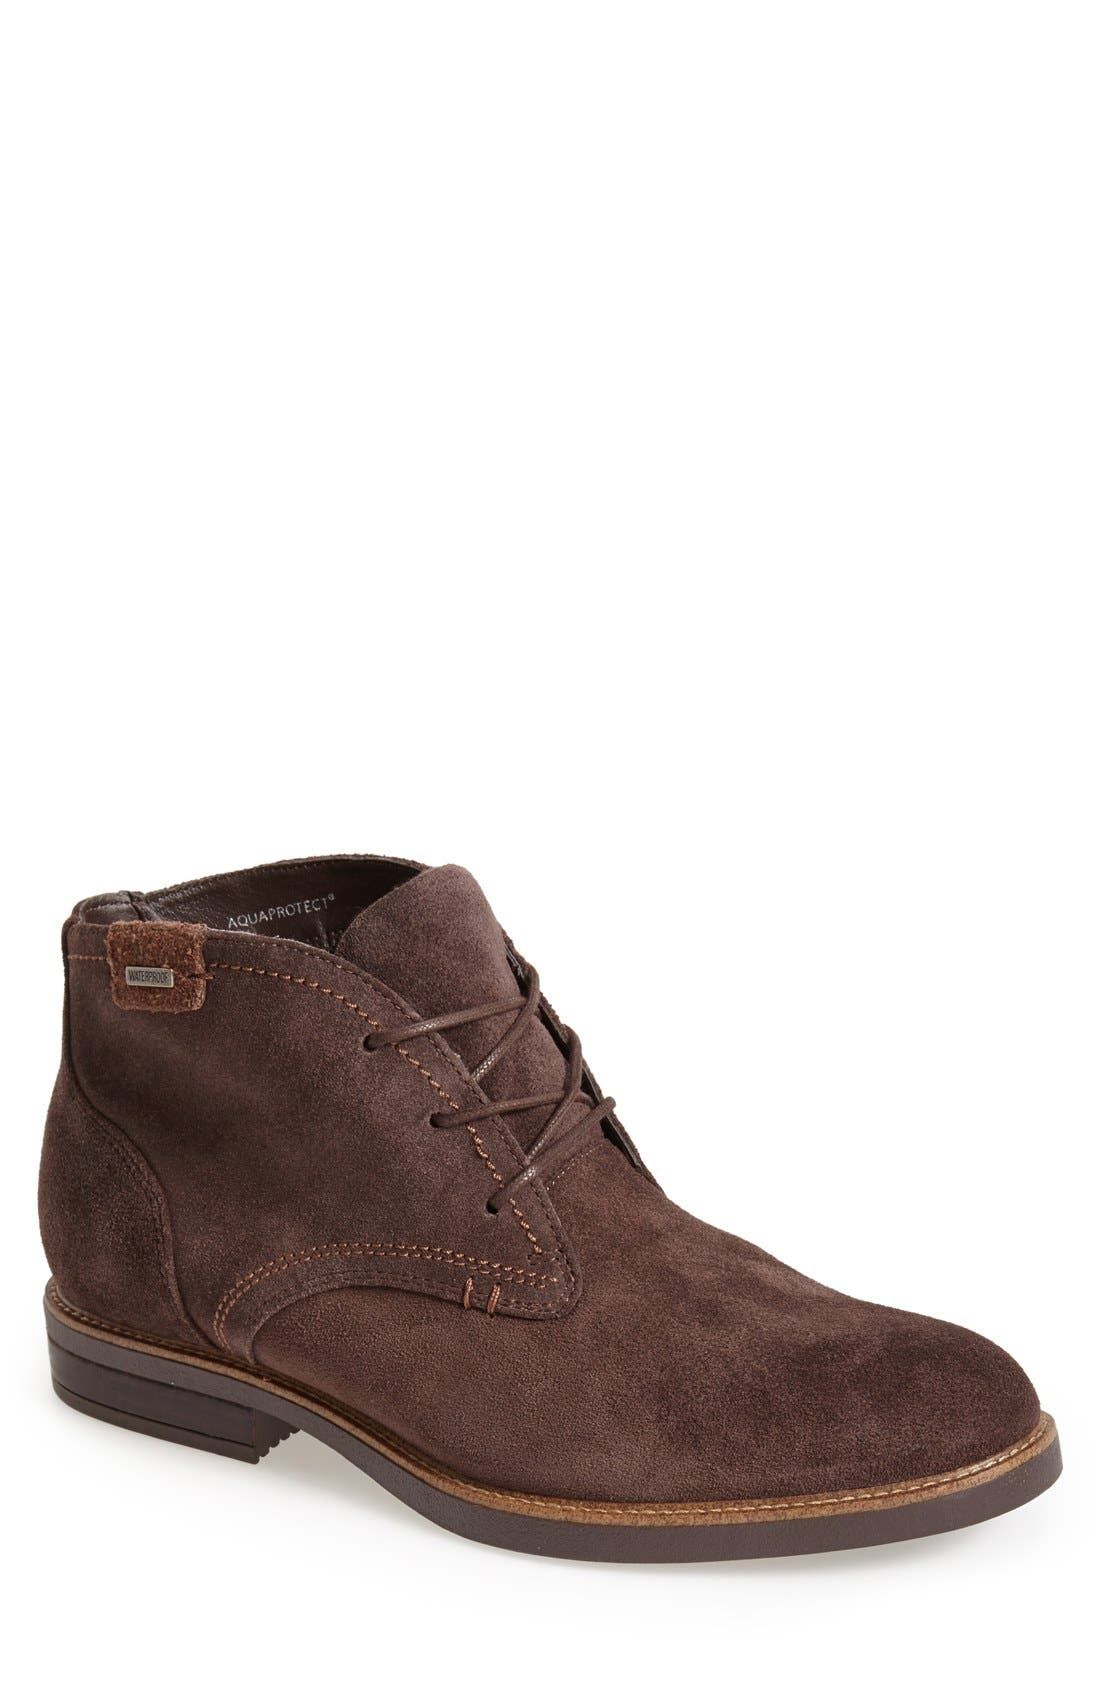 Gustave Waterproof Chukka Boot,                             Main thumbnail 1, color,                             CAFE